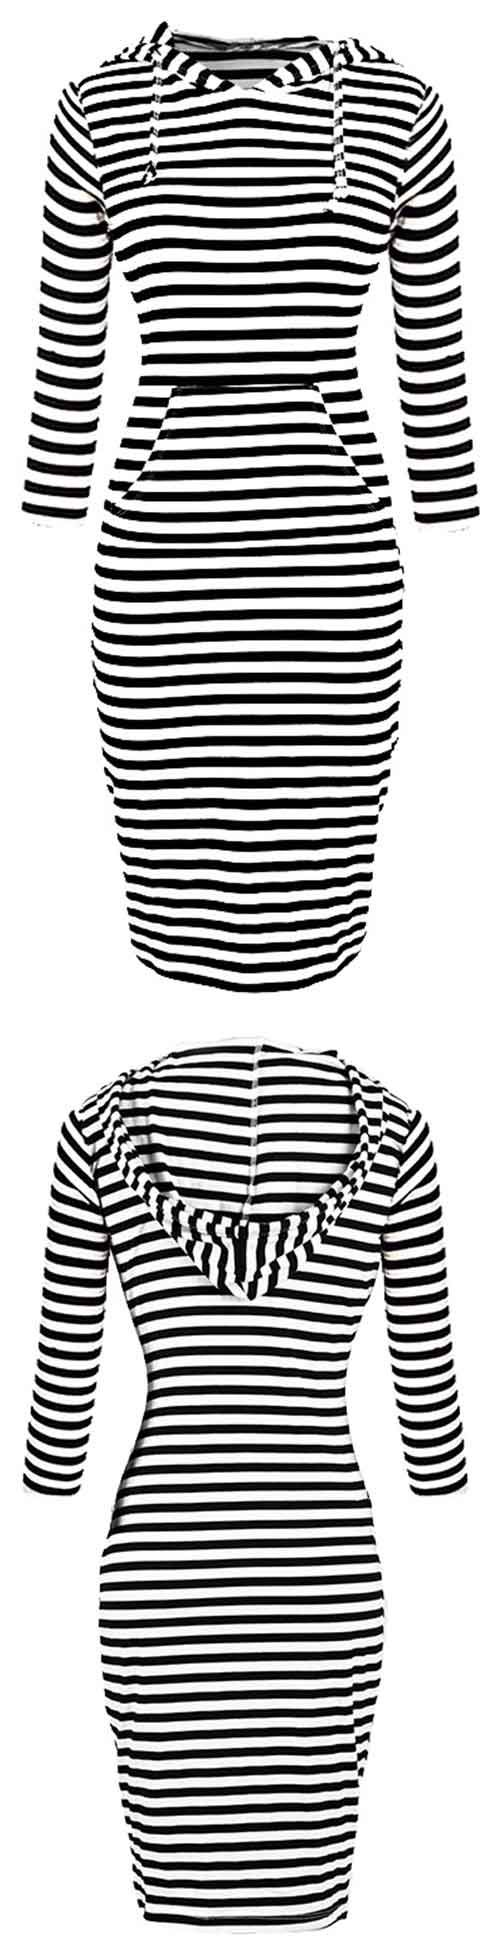 This striped piece featuring drawstring hooded design and stripe printing, dressed with pockets at front, will never go out of style!. Are you fast enough to get it?